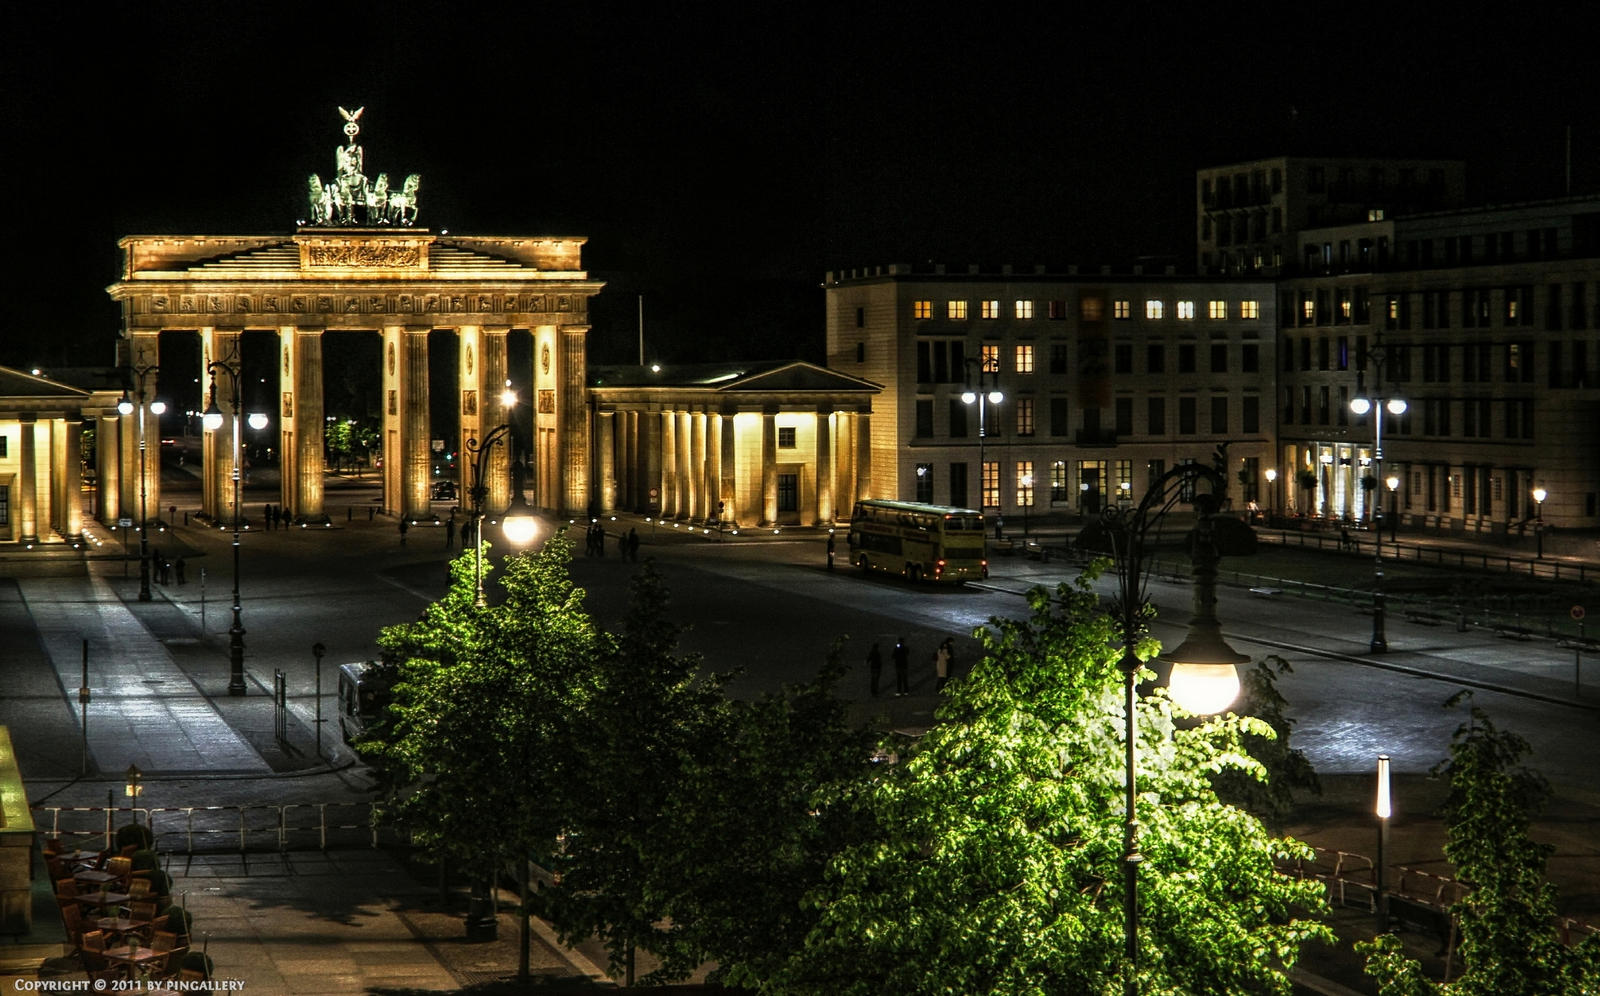 Berlin - Paris Place at Night by pingallery on DeviantArt